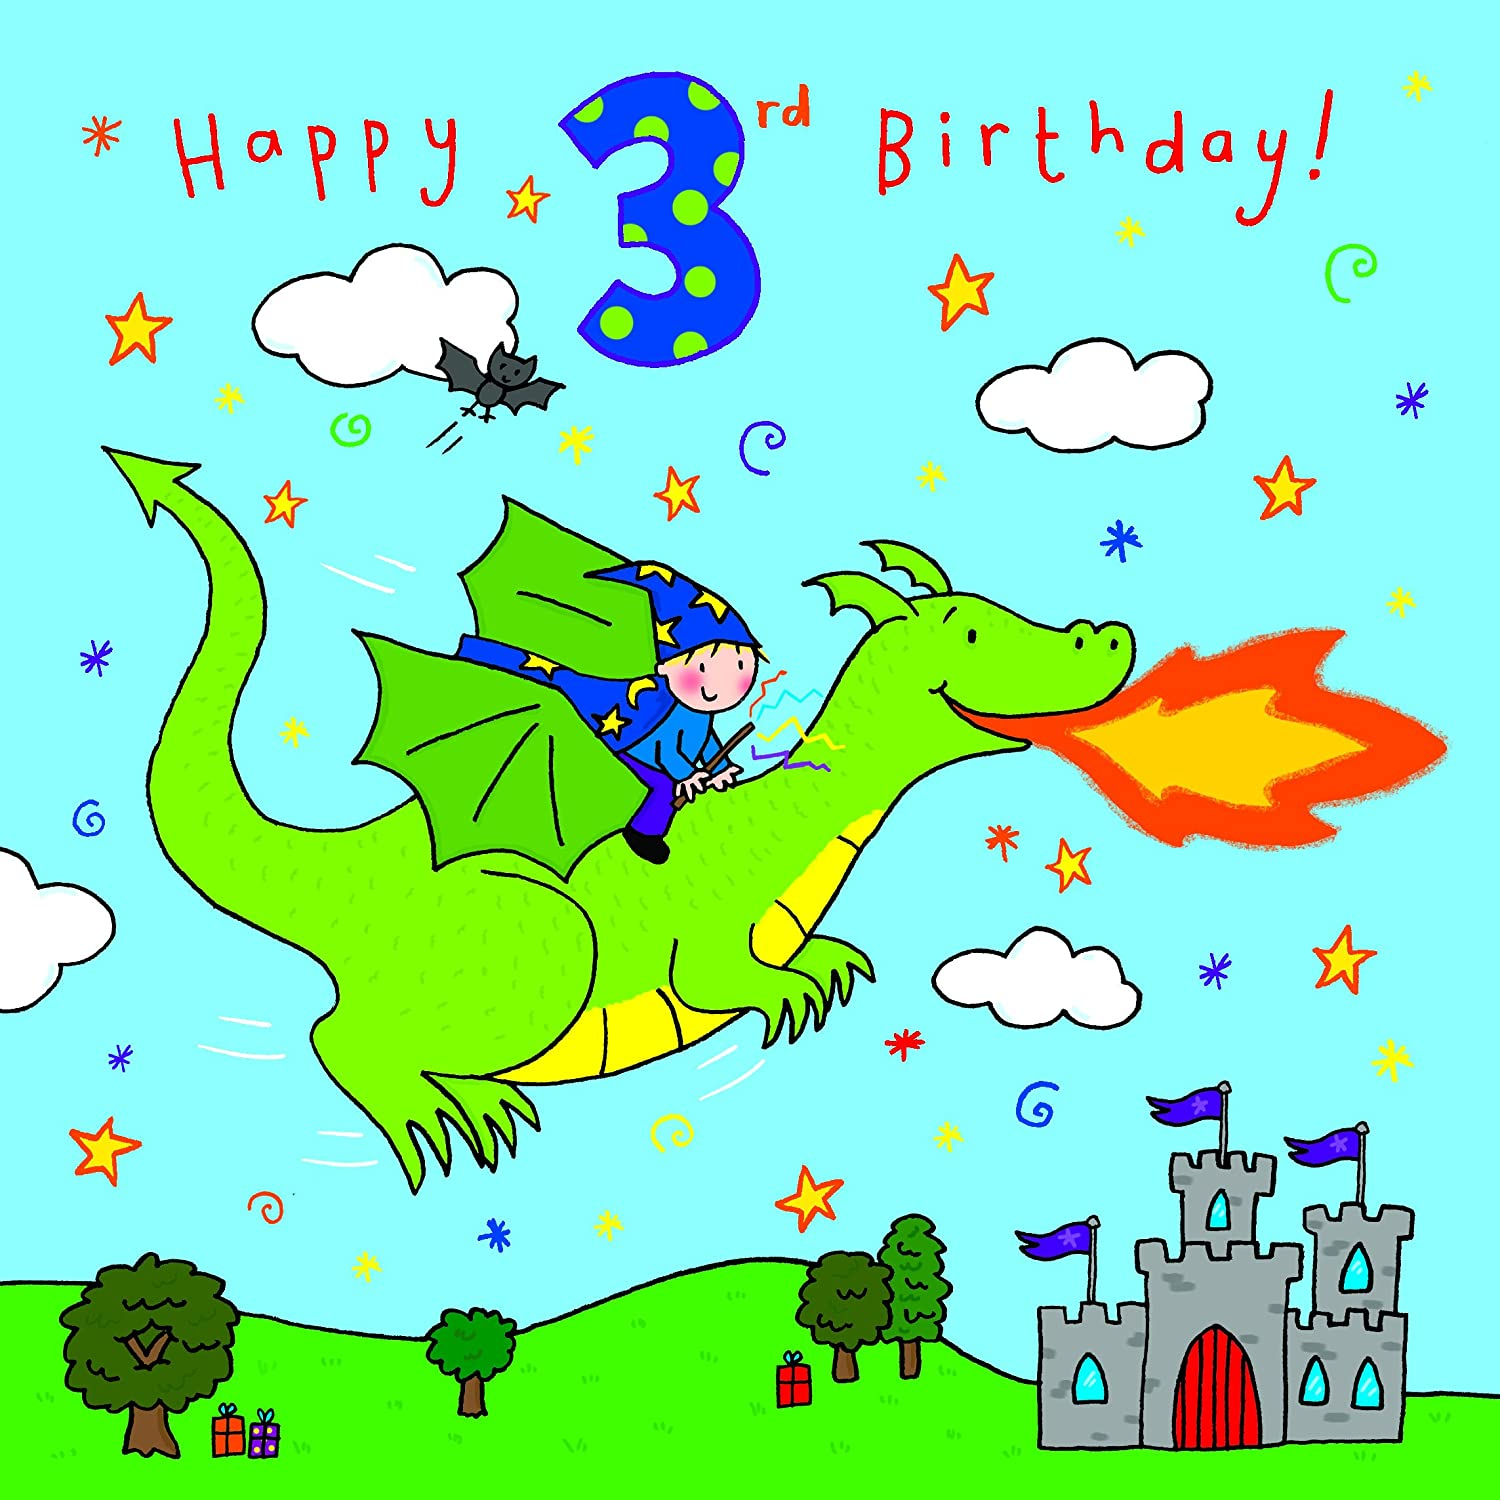 Twizler 9th Birthday Card for Boy with Present Balloon and – Birthday Card for Boy